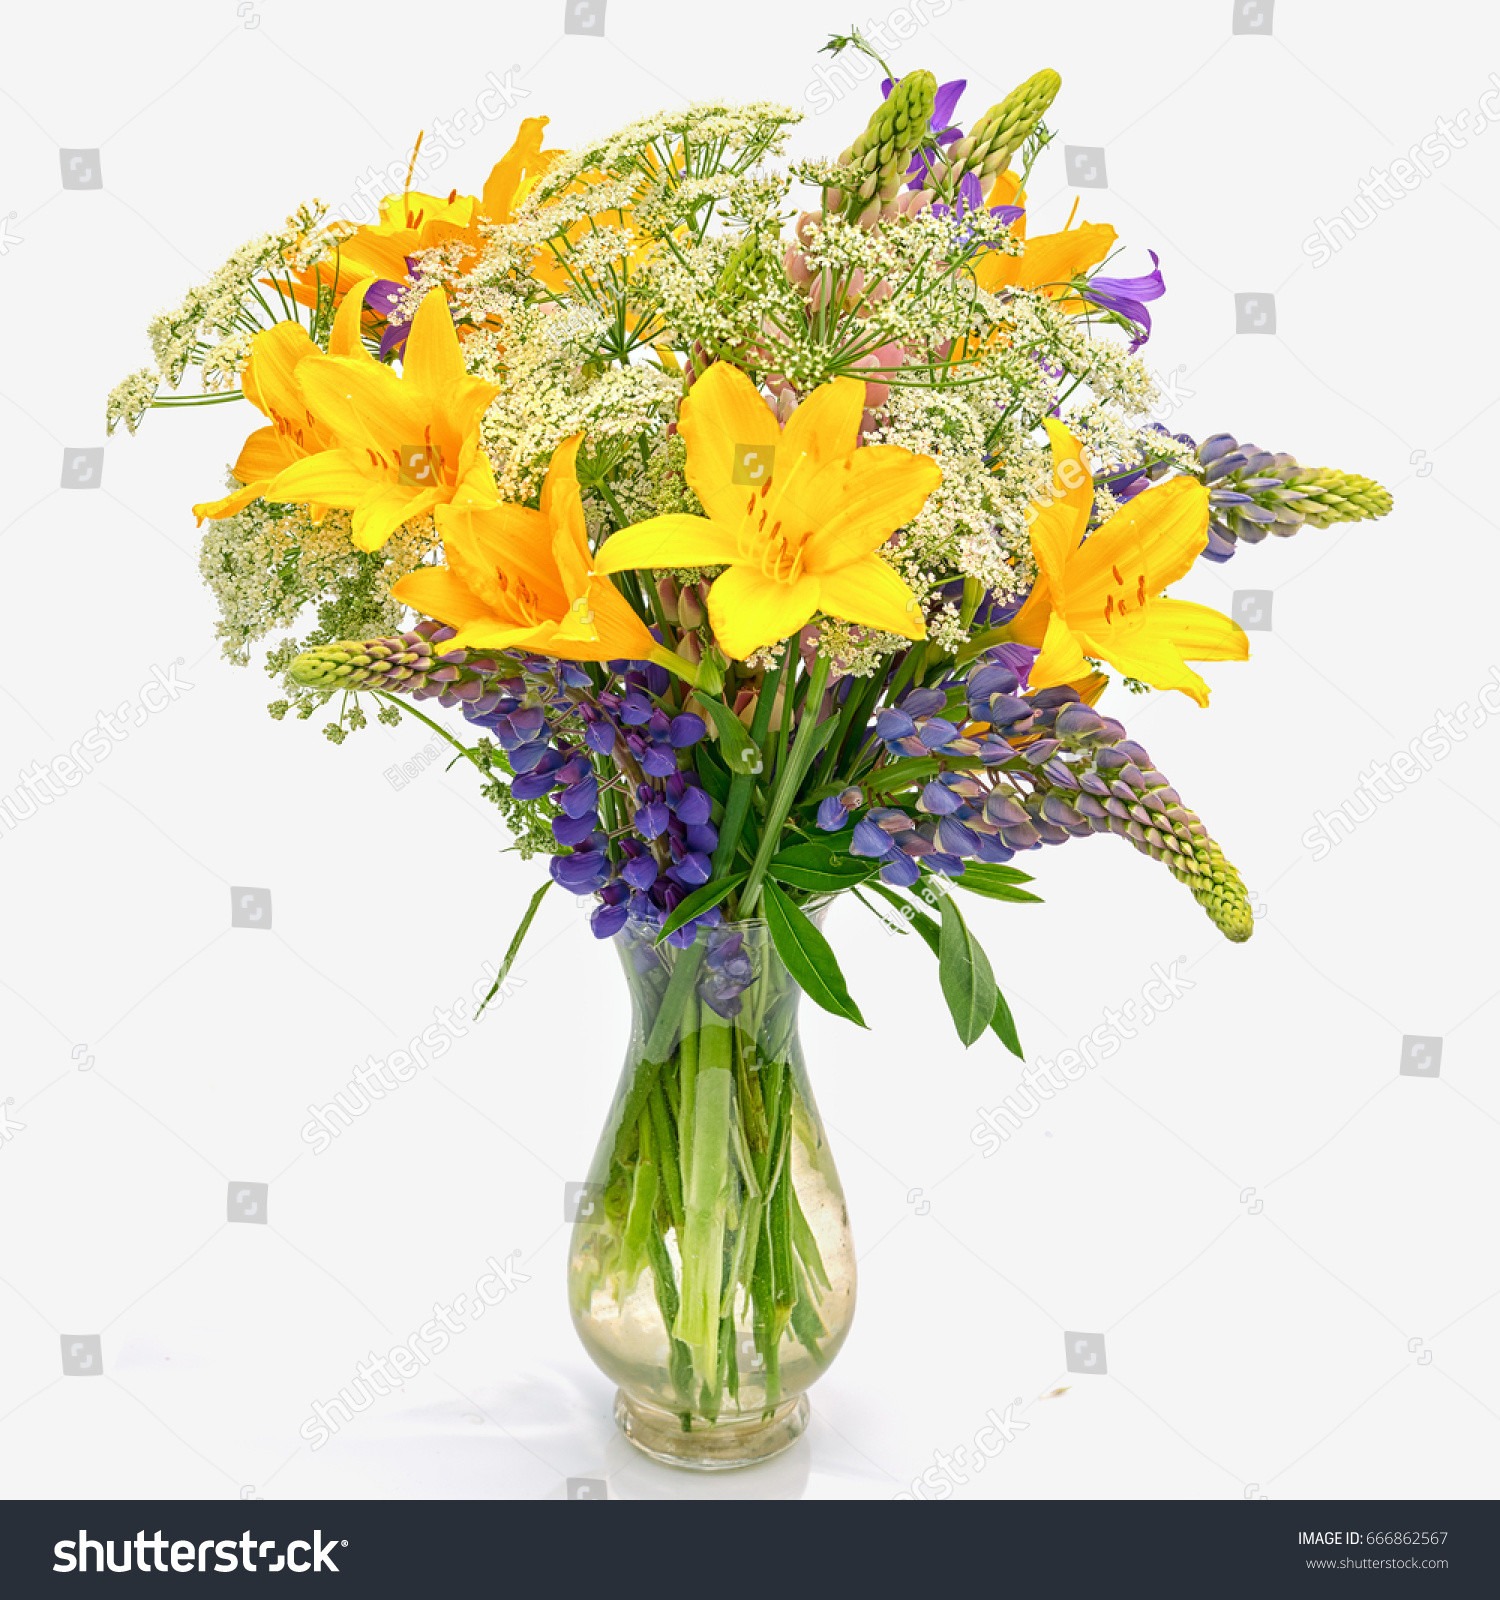 single flower glass vase of bouquet od wild flowers achillea millefolium stock photo edit now for bouquet od wild flowers achillea millefolium day lily and lupine in a transparent glass